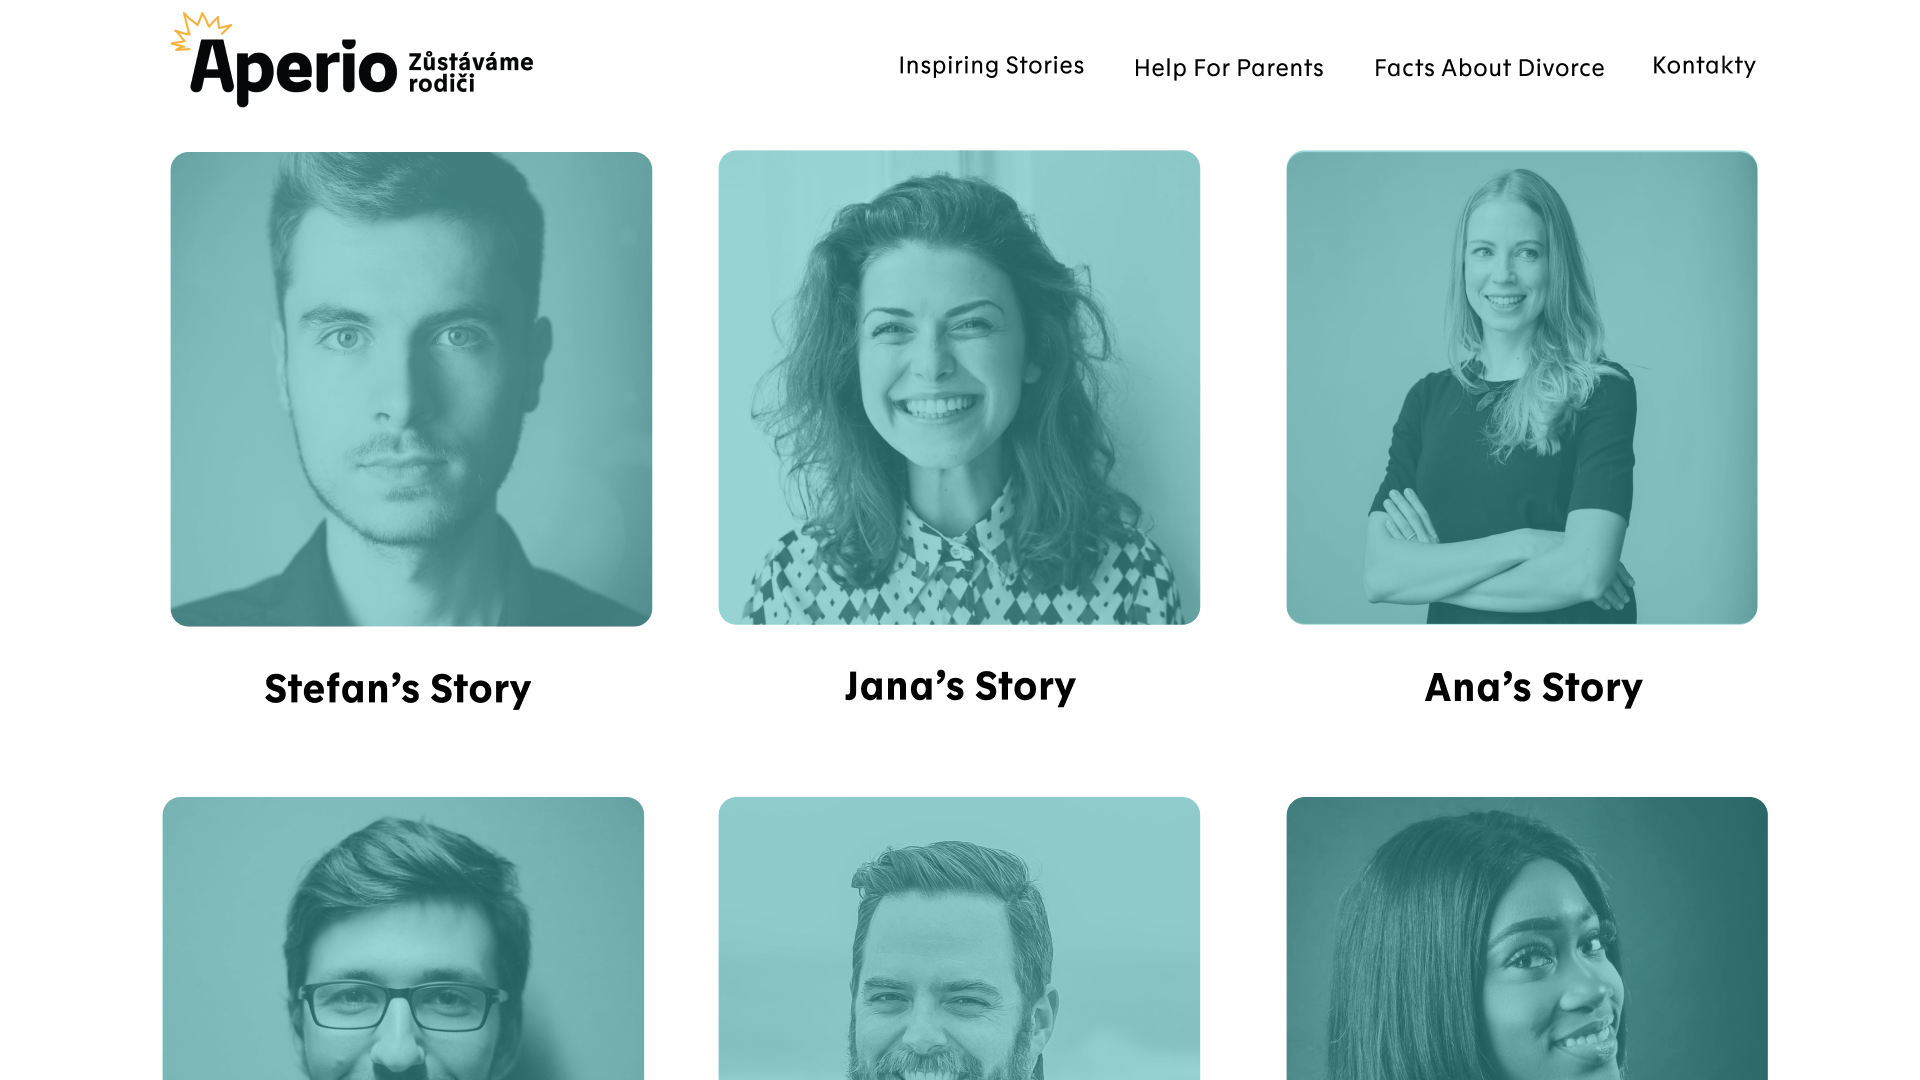 Graphic Design Students develop a live Campaign Website for parent support organisation Aperio